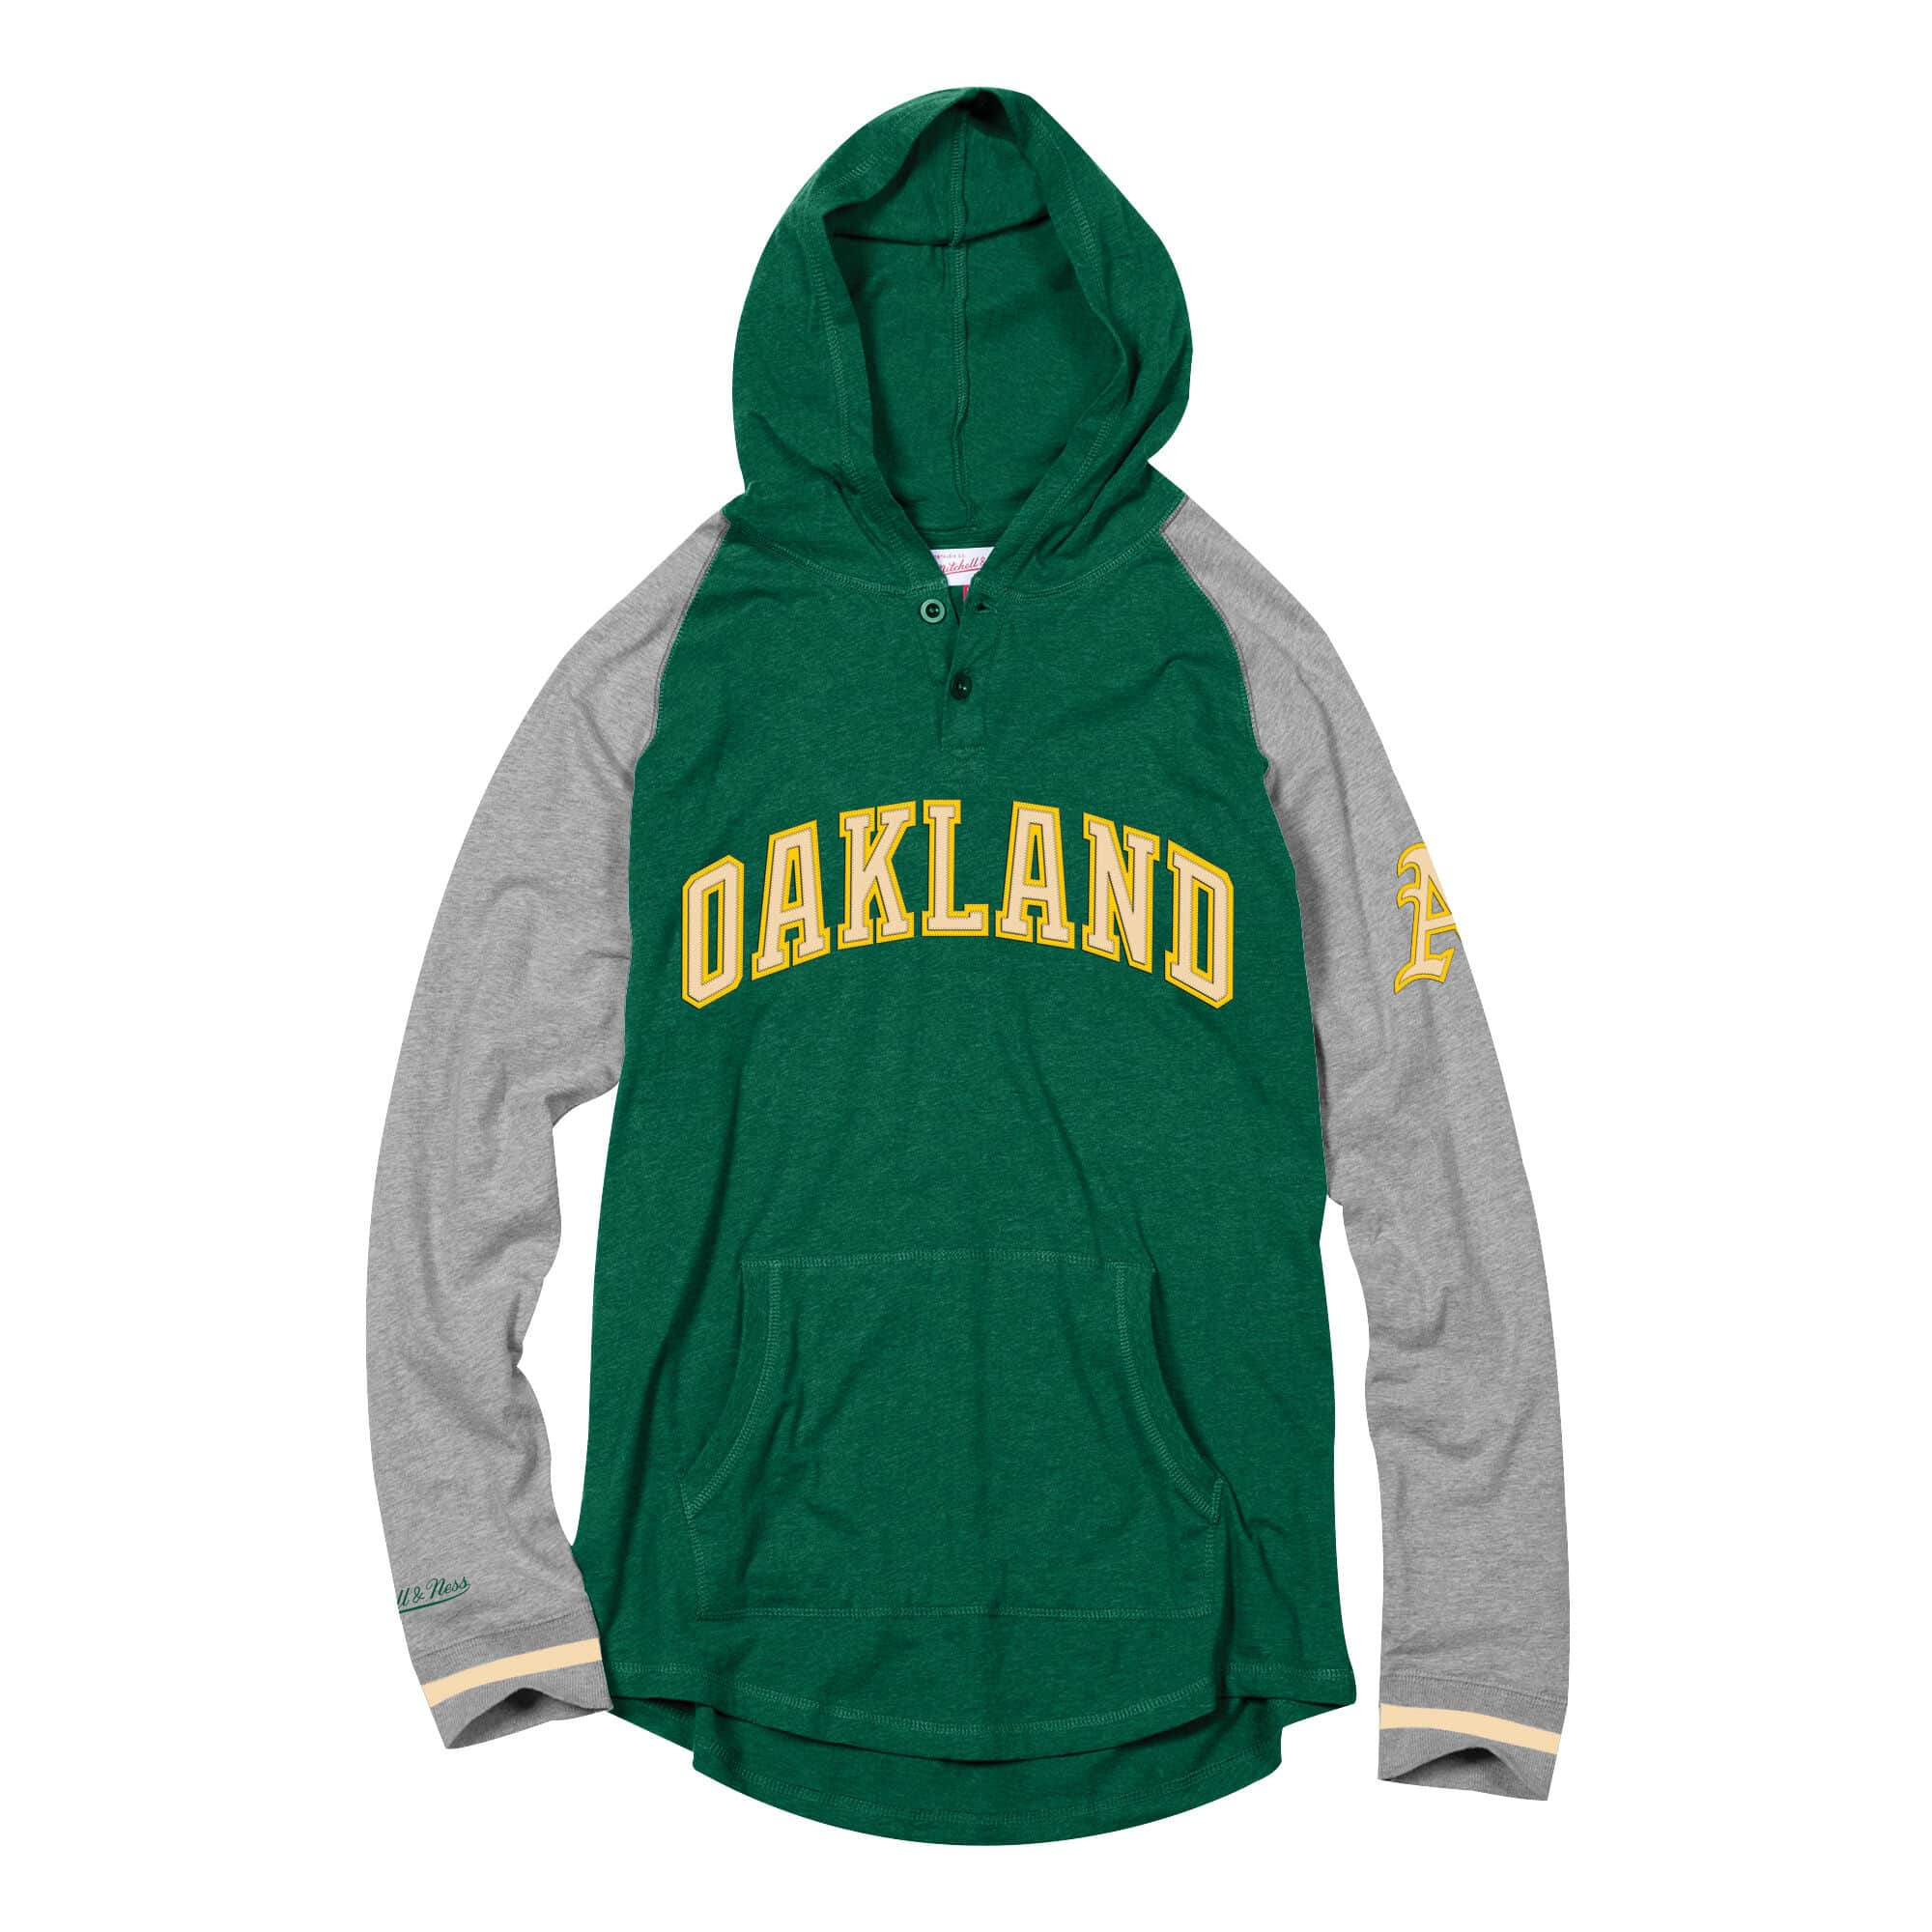 Slugfest Lightweight Hoody Oakland Athletics